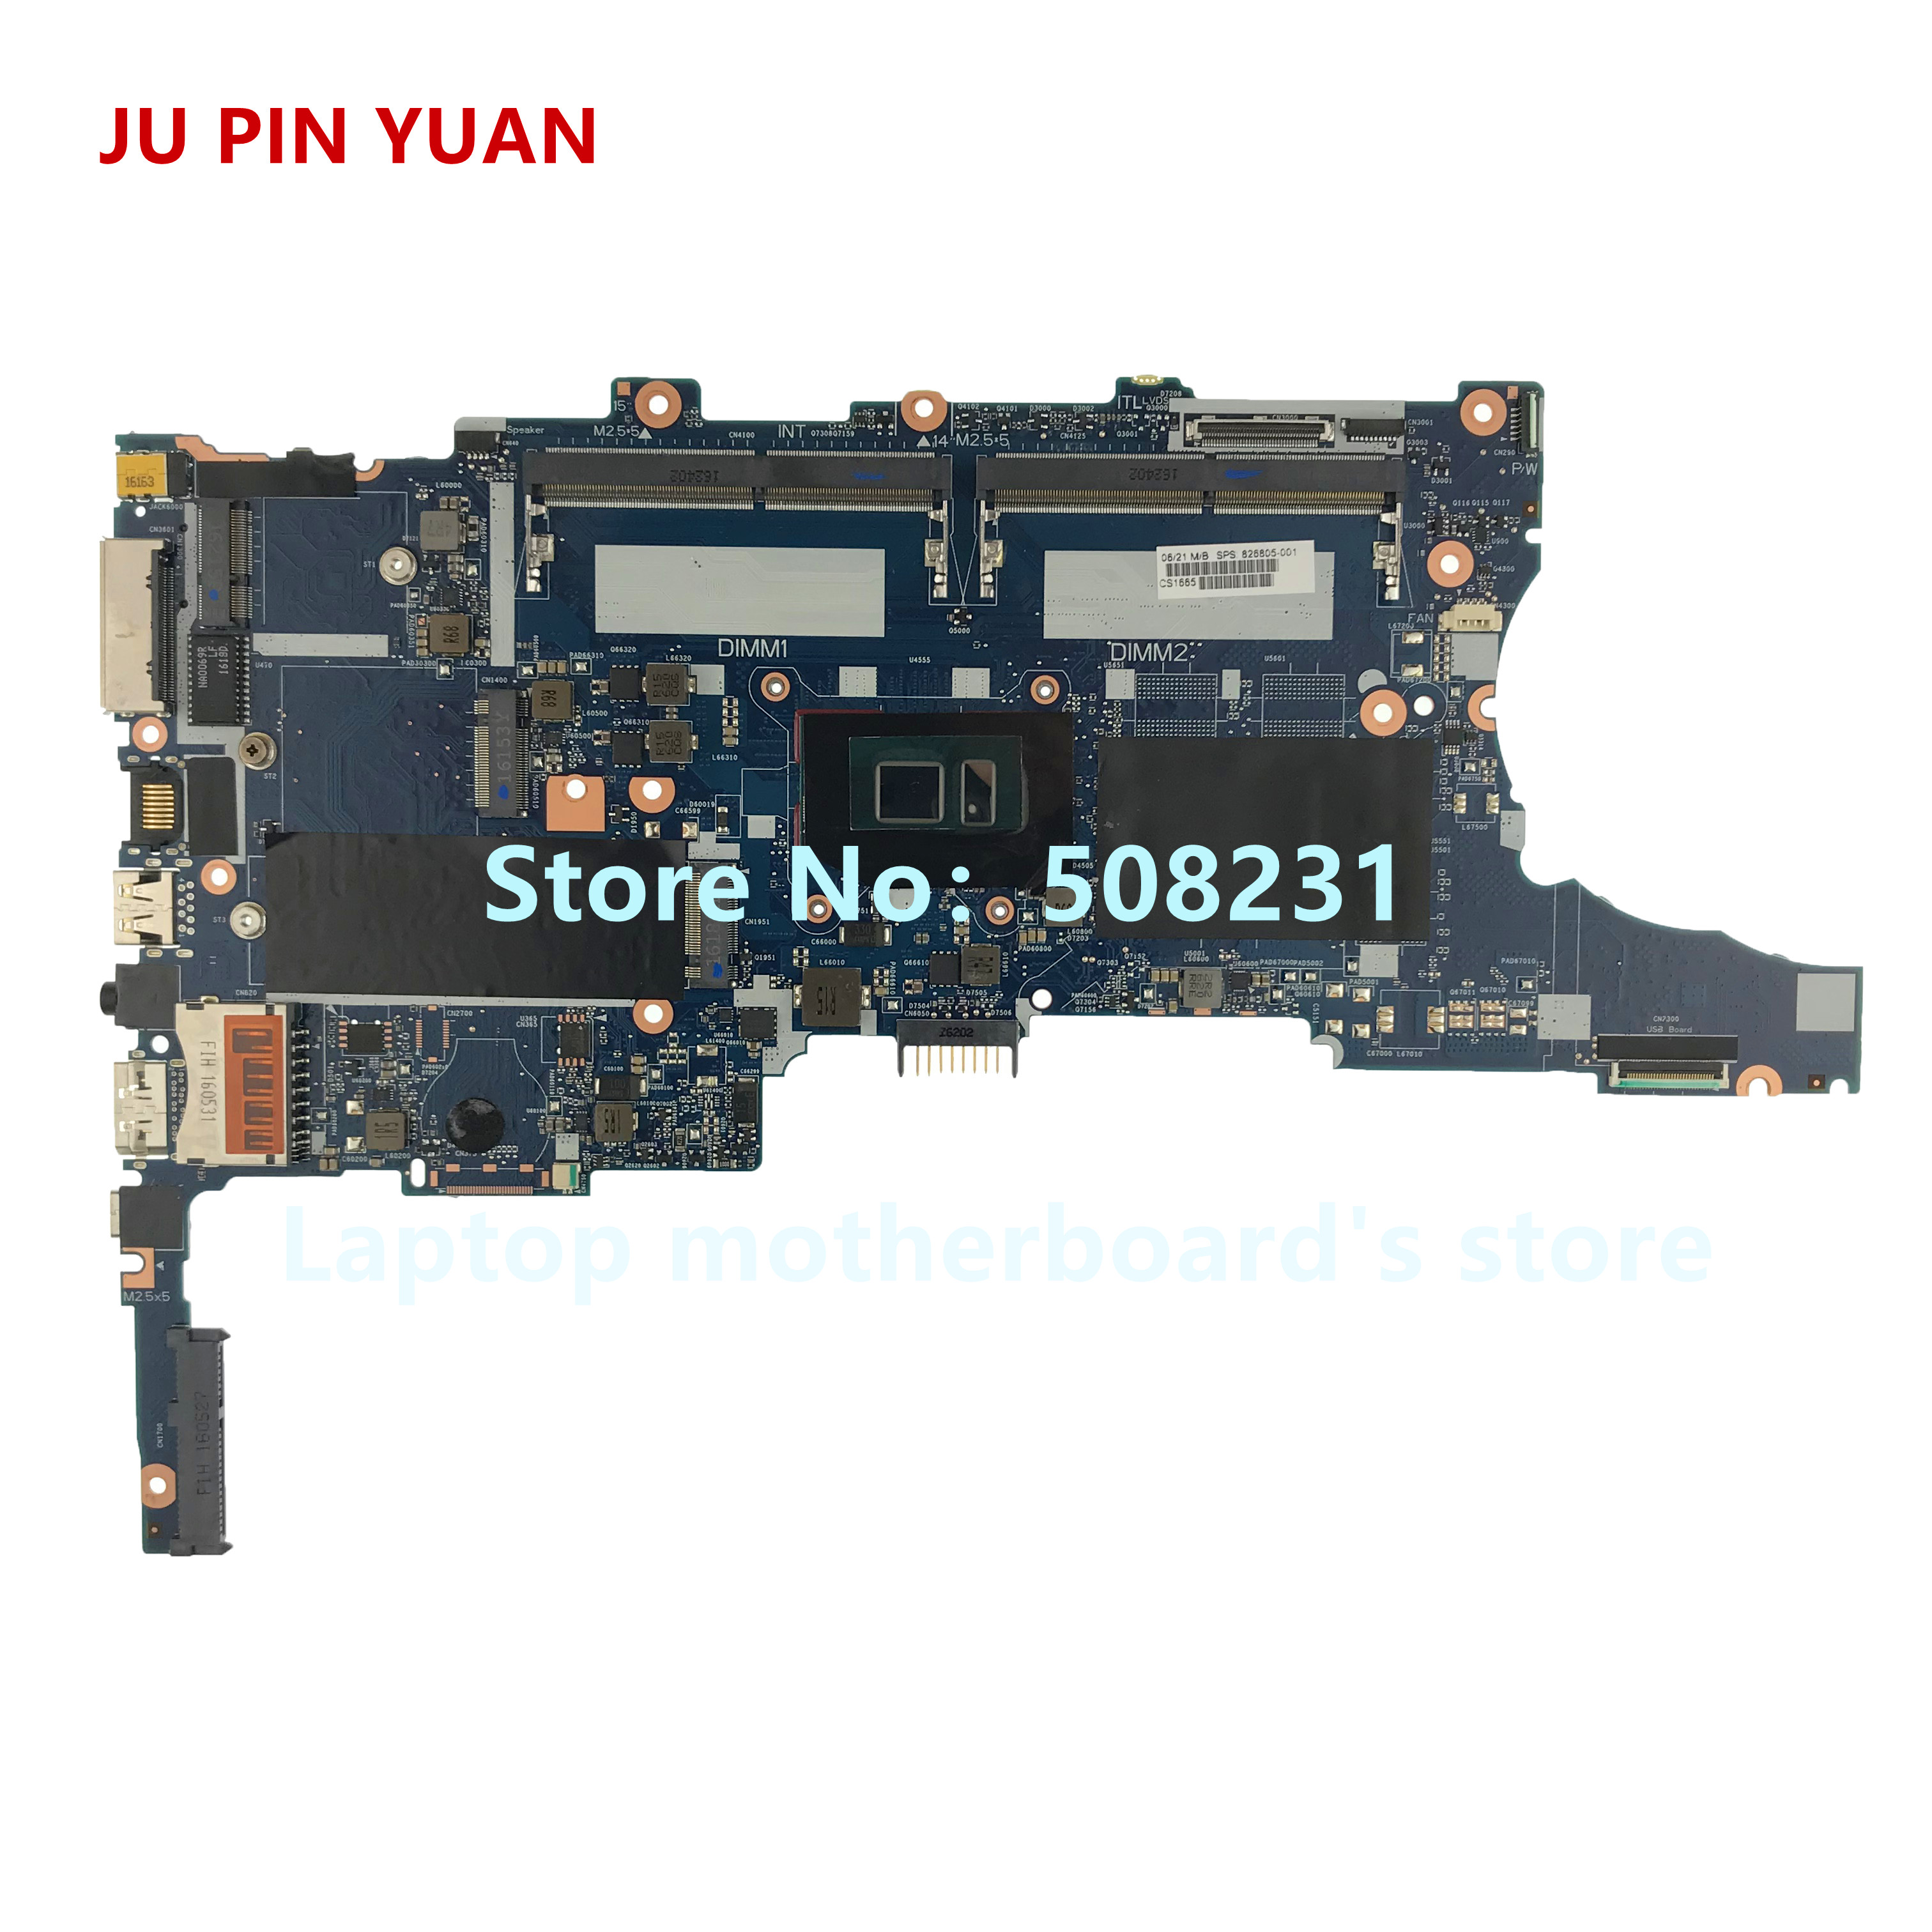 JU PIN YUAN 826805-001 Laptop Motherboard For HP EliteBook 840 G3 850 G3 Notebook PC With I5-6200u CPU 826805-601 Fully Tested